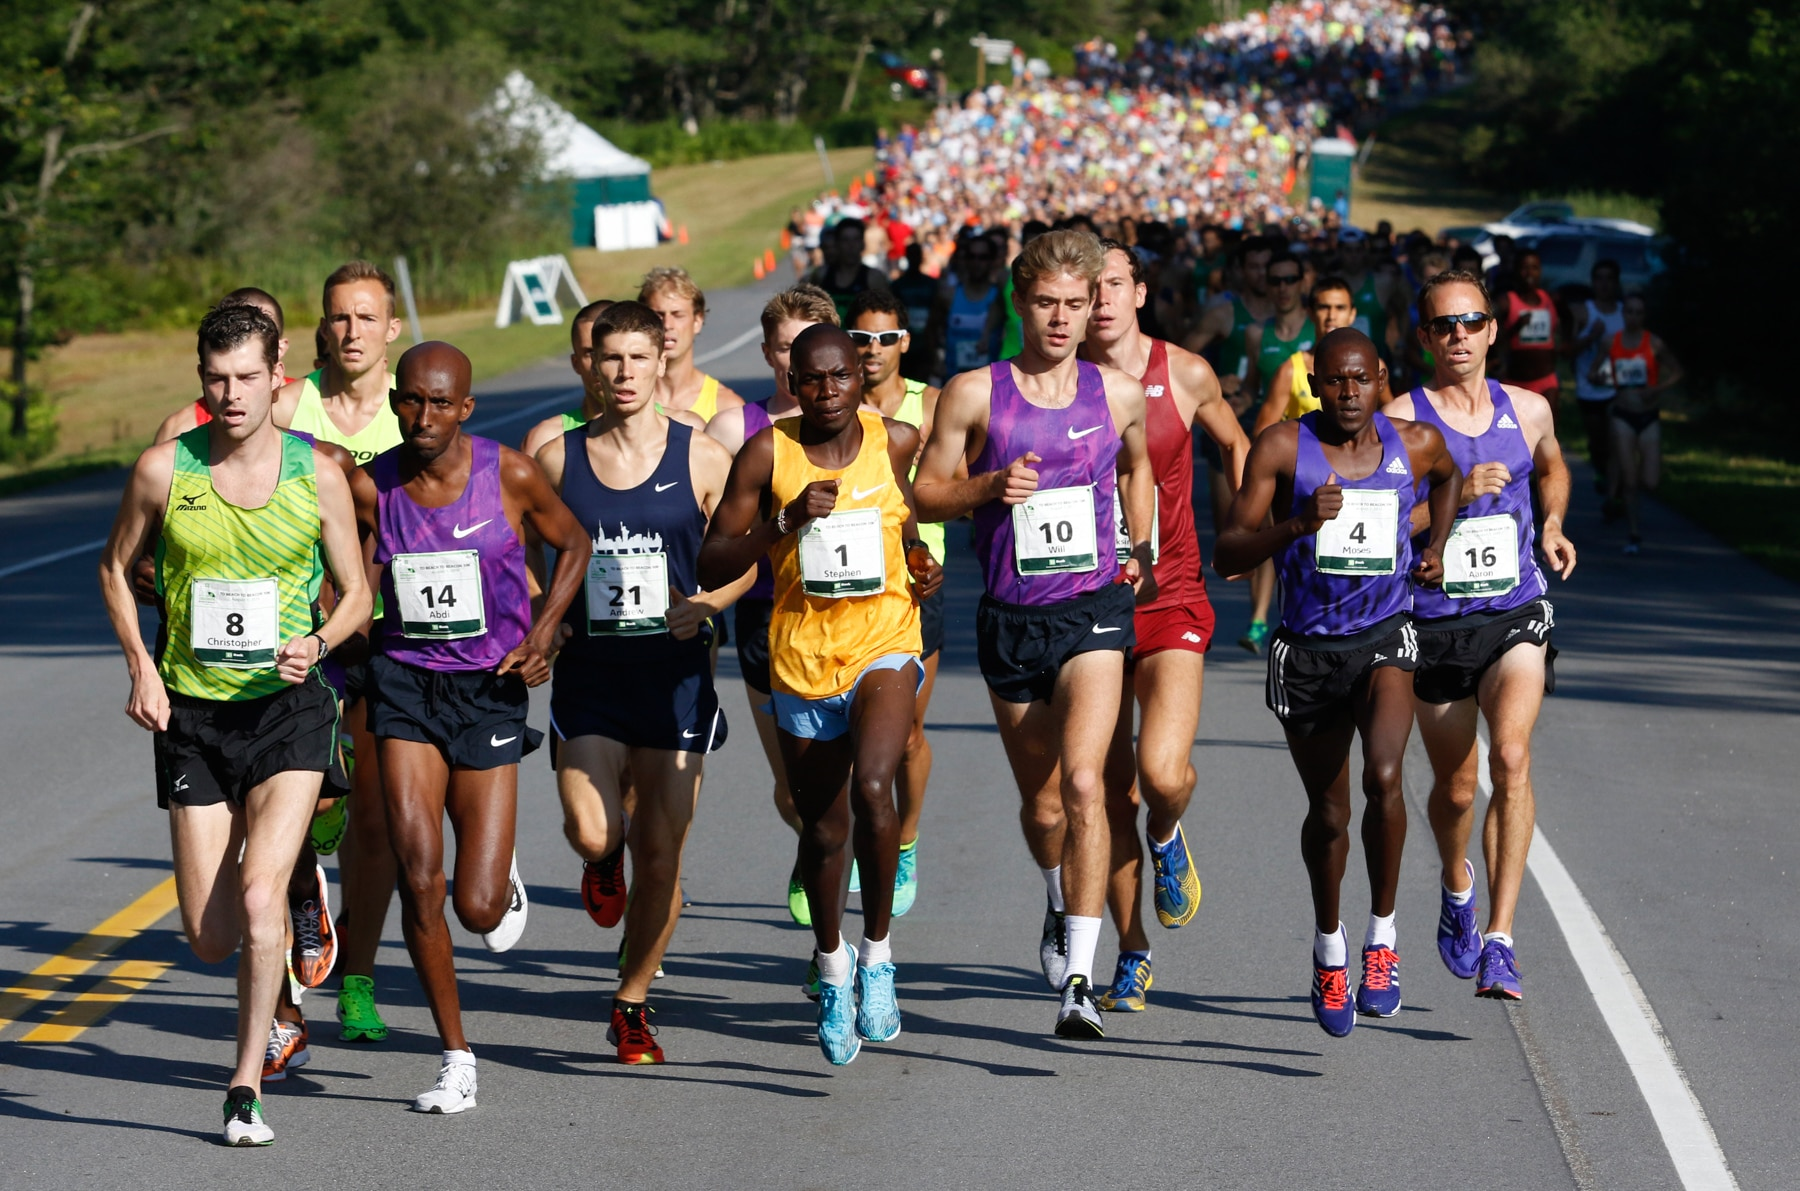 Group of men leading the pack in a running race (© AP Images)